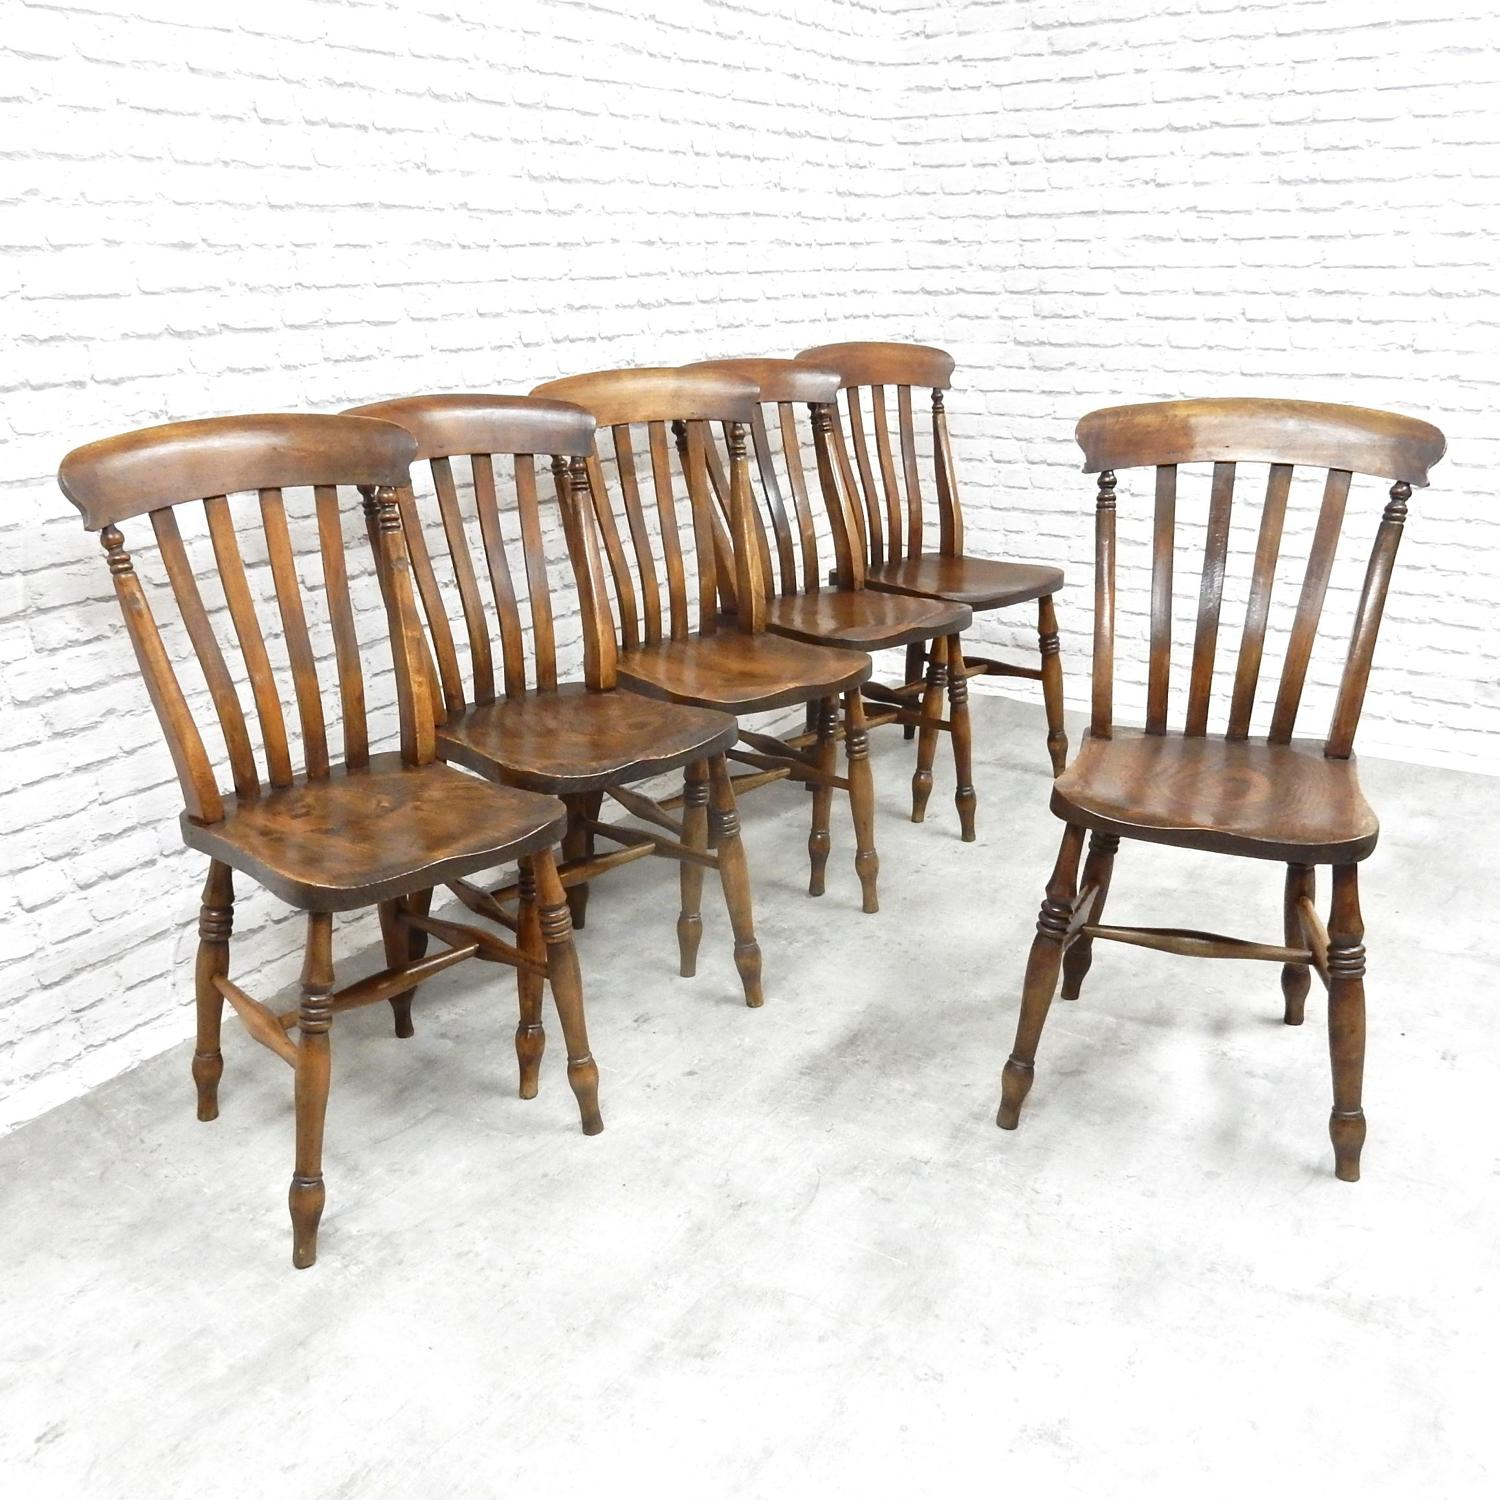 Set 6 Antique Country Chairs